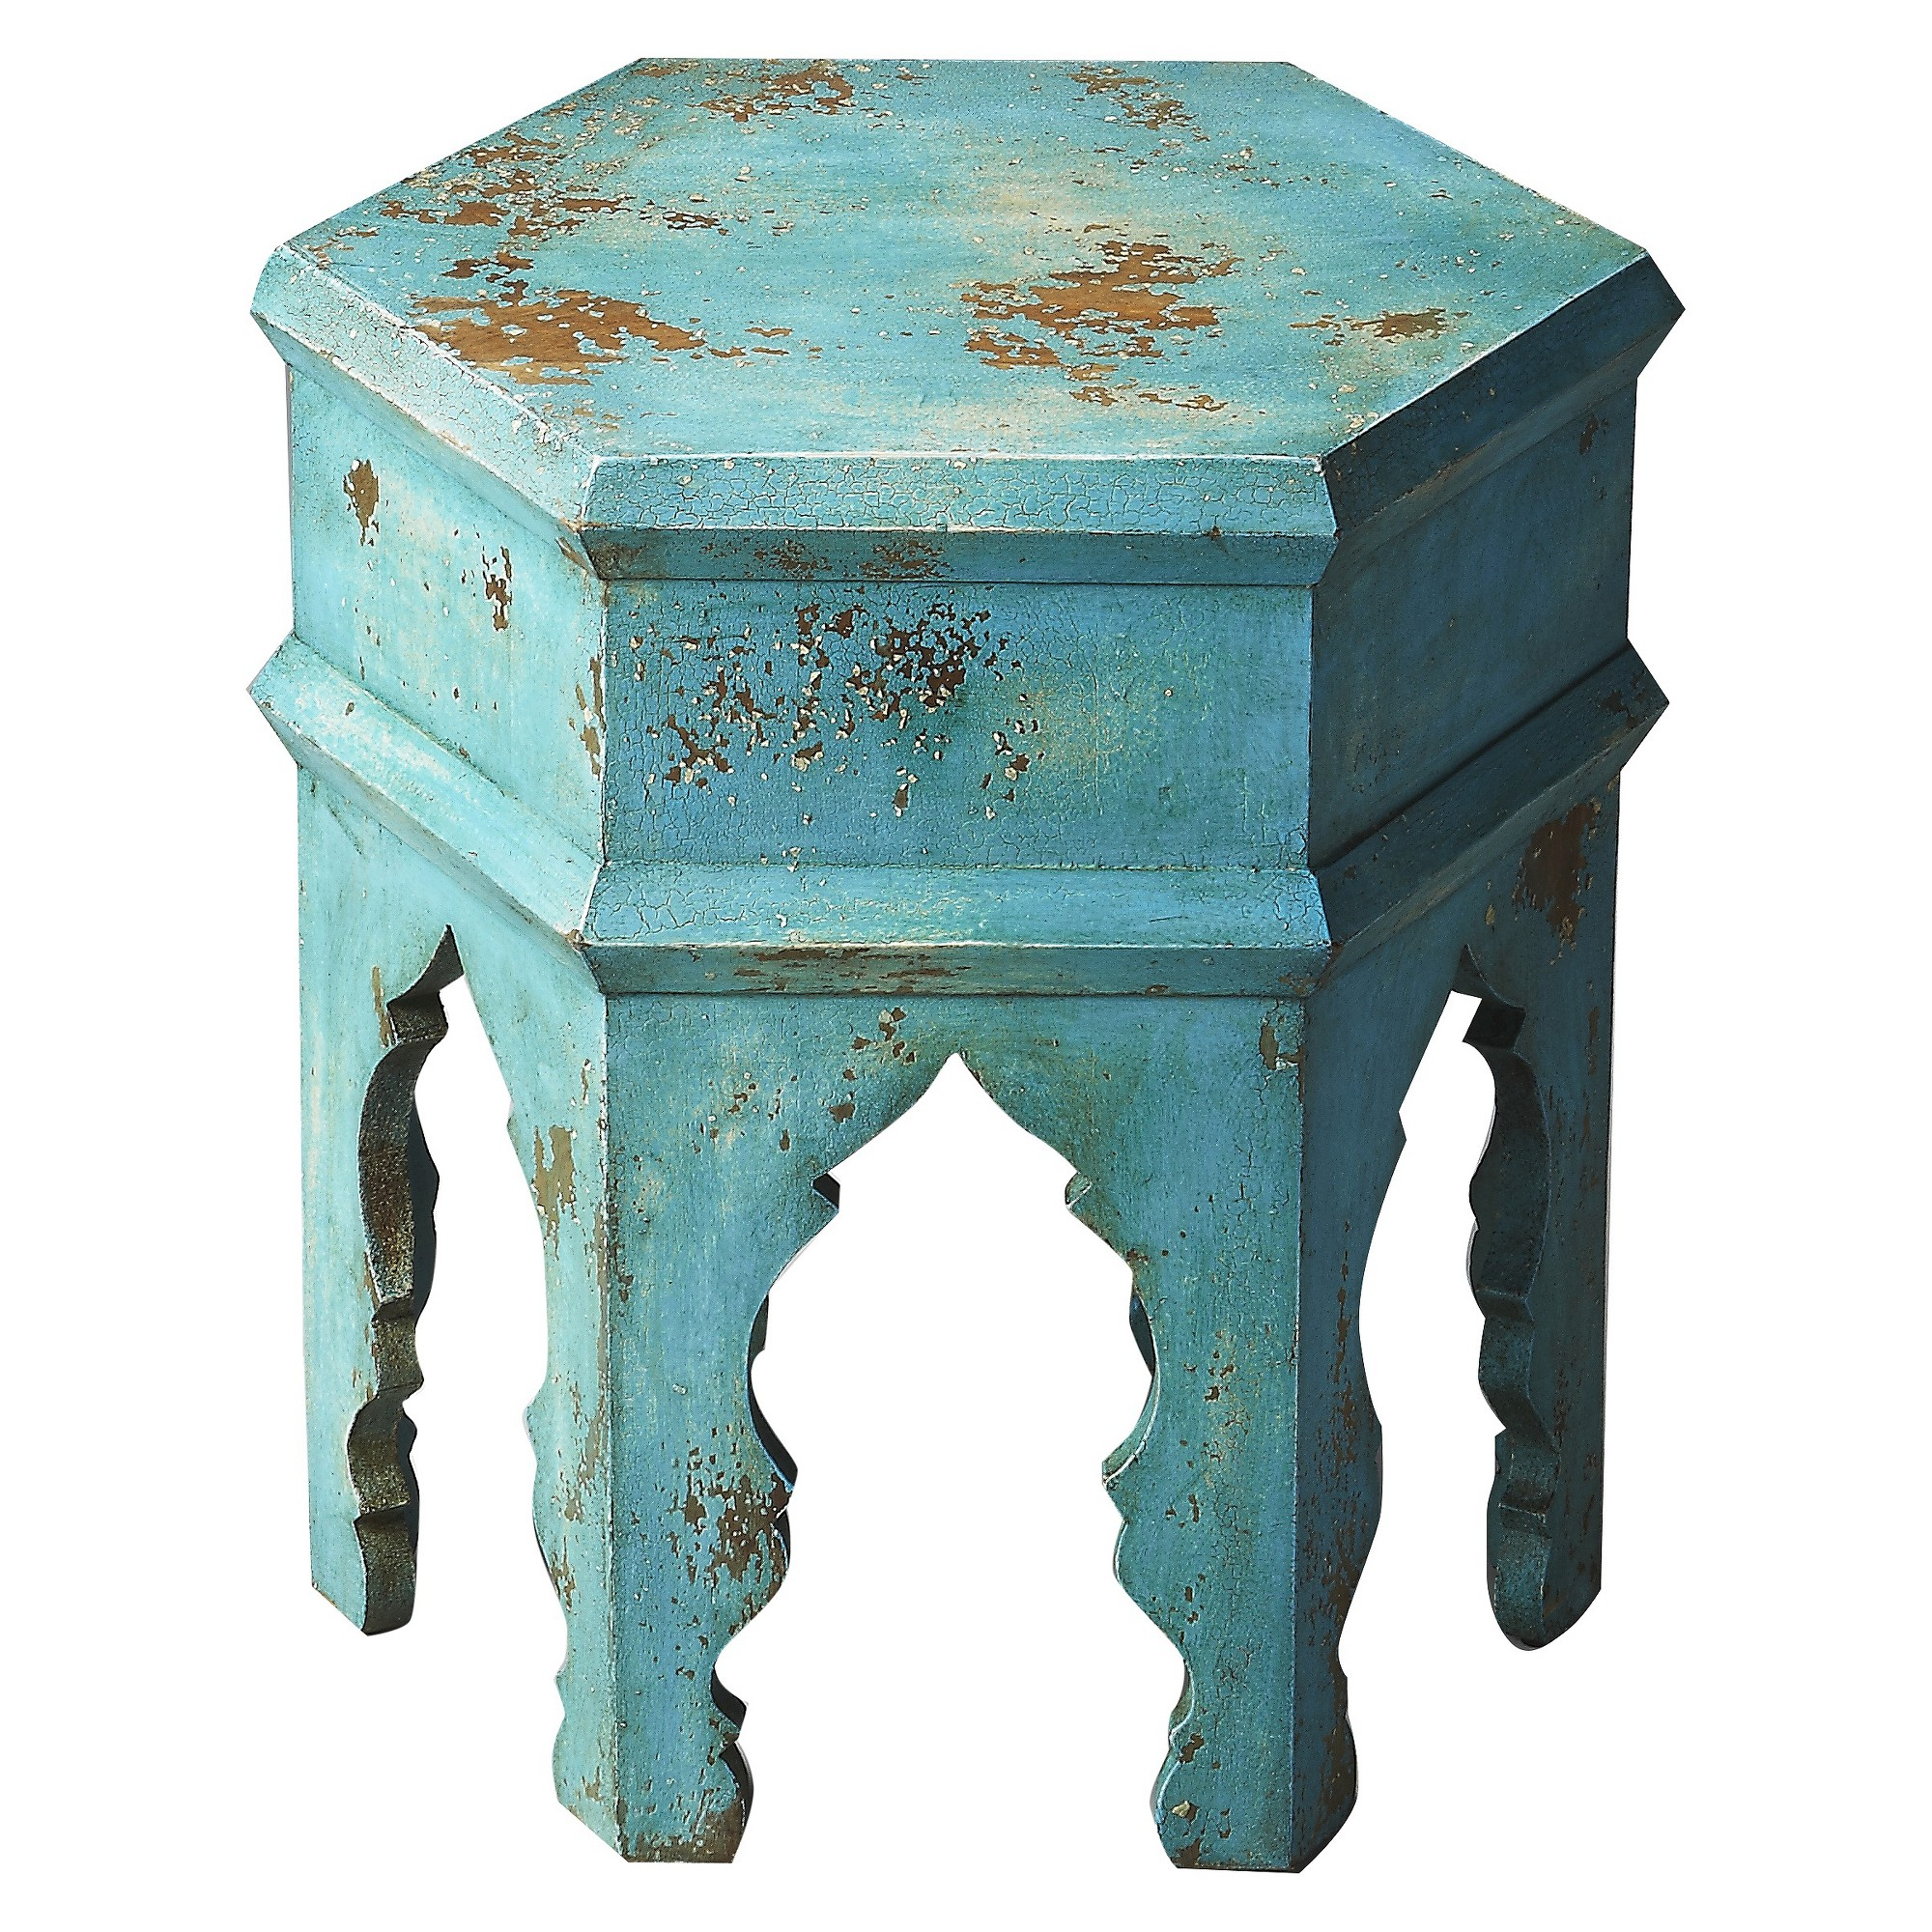 gold living round and tall kijiji table modern storage target tables for glass antique room bench decorative ott cabinet threshold accent furniture white outdoor teal full size